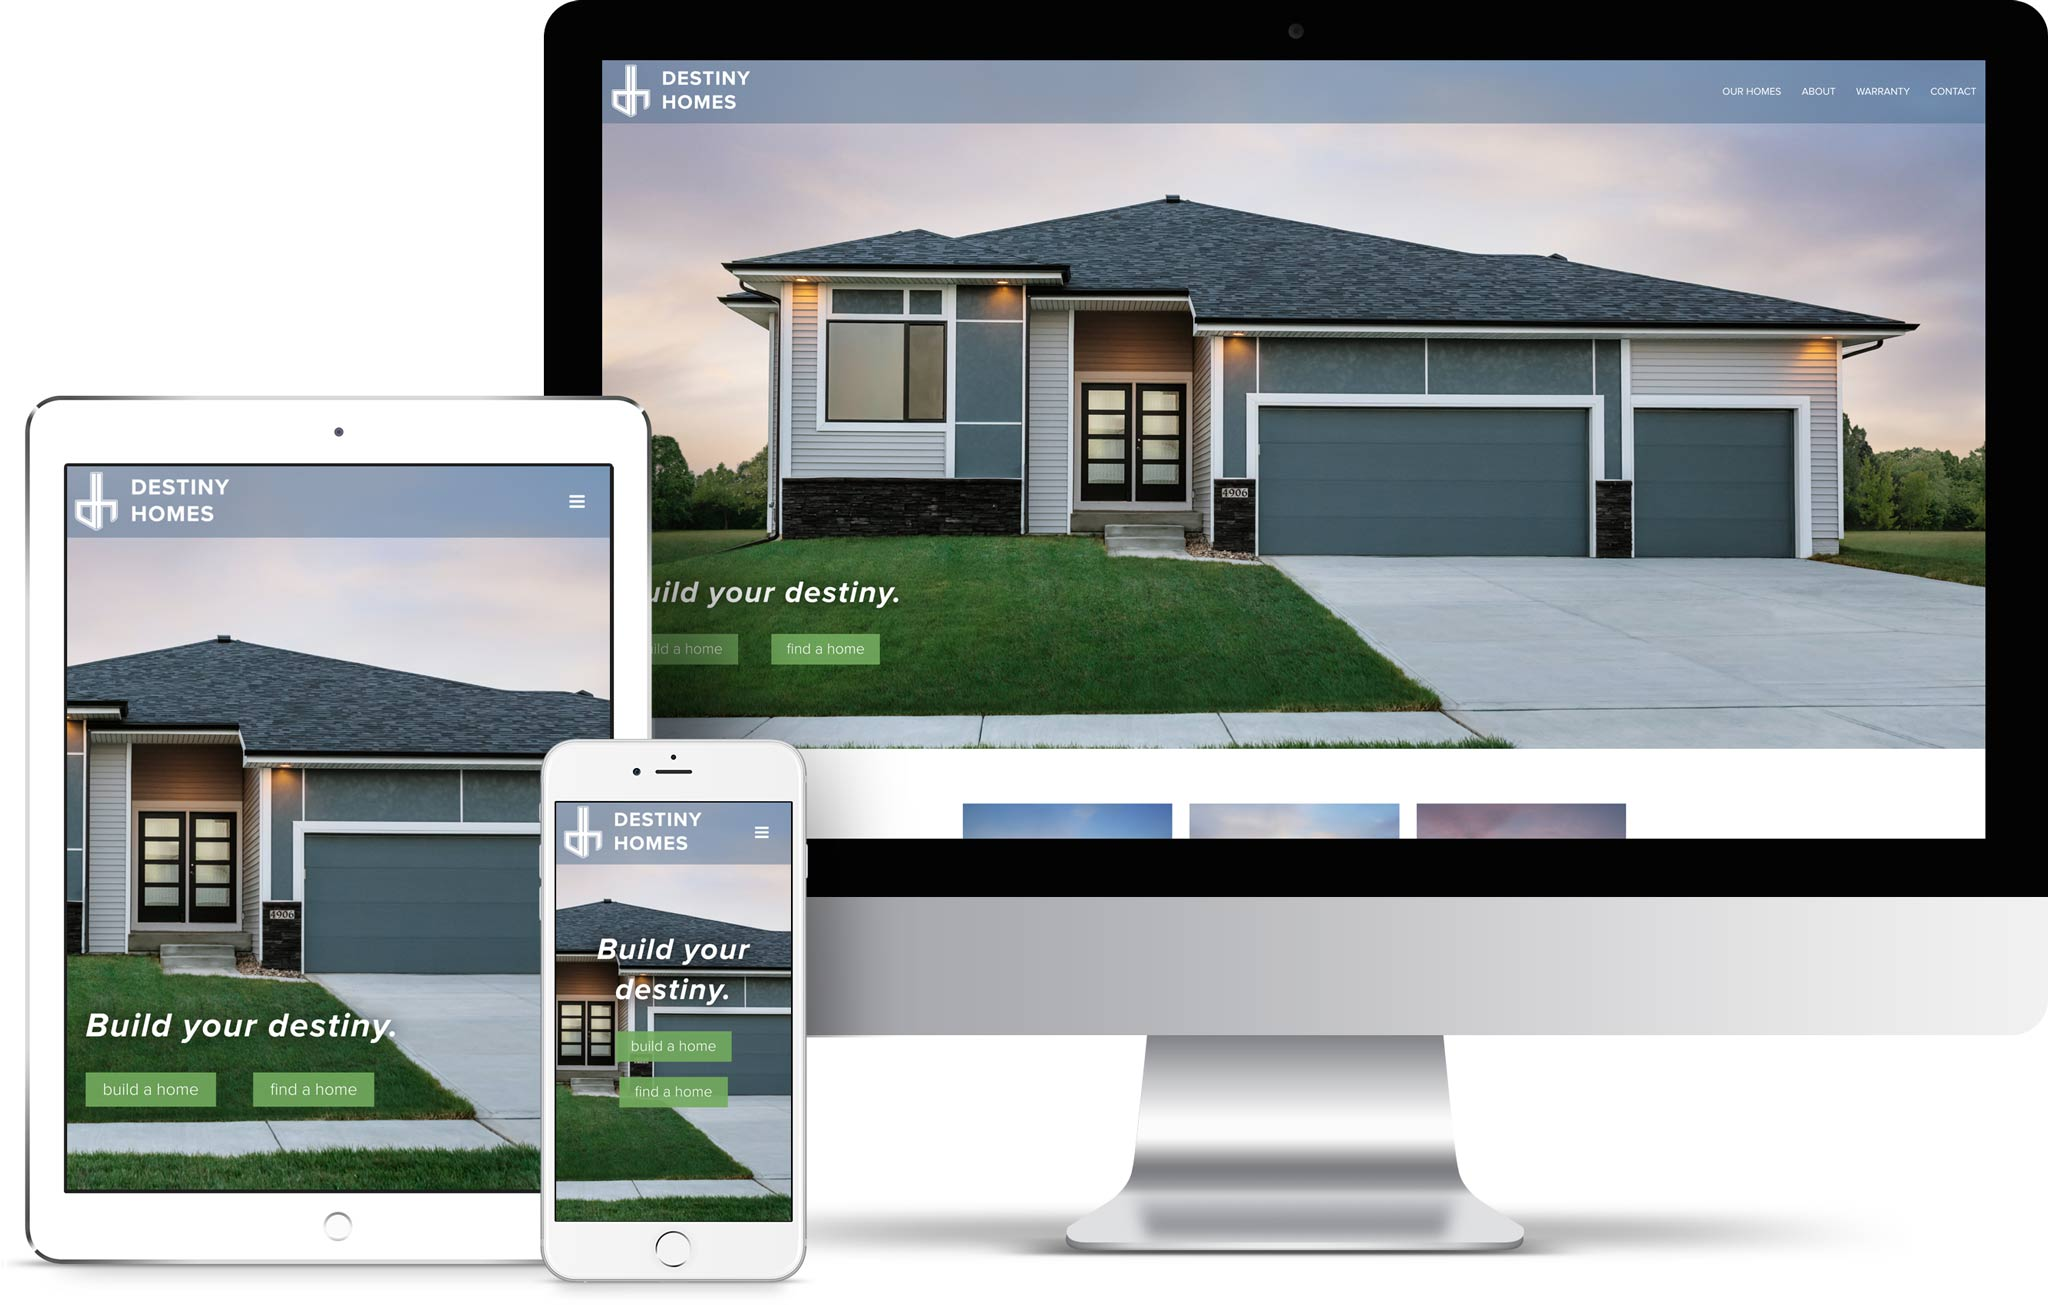 Destiny home builder des moines web design canoe there for Home building websites